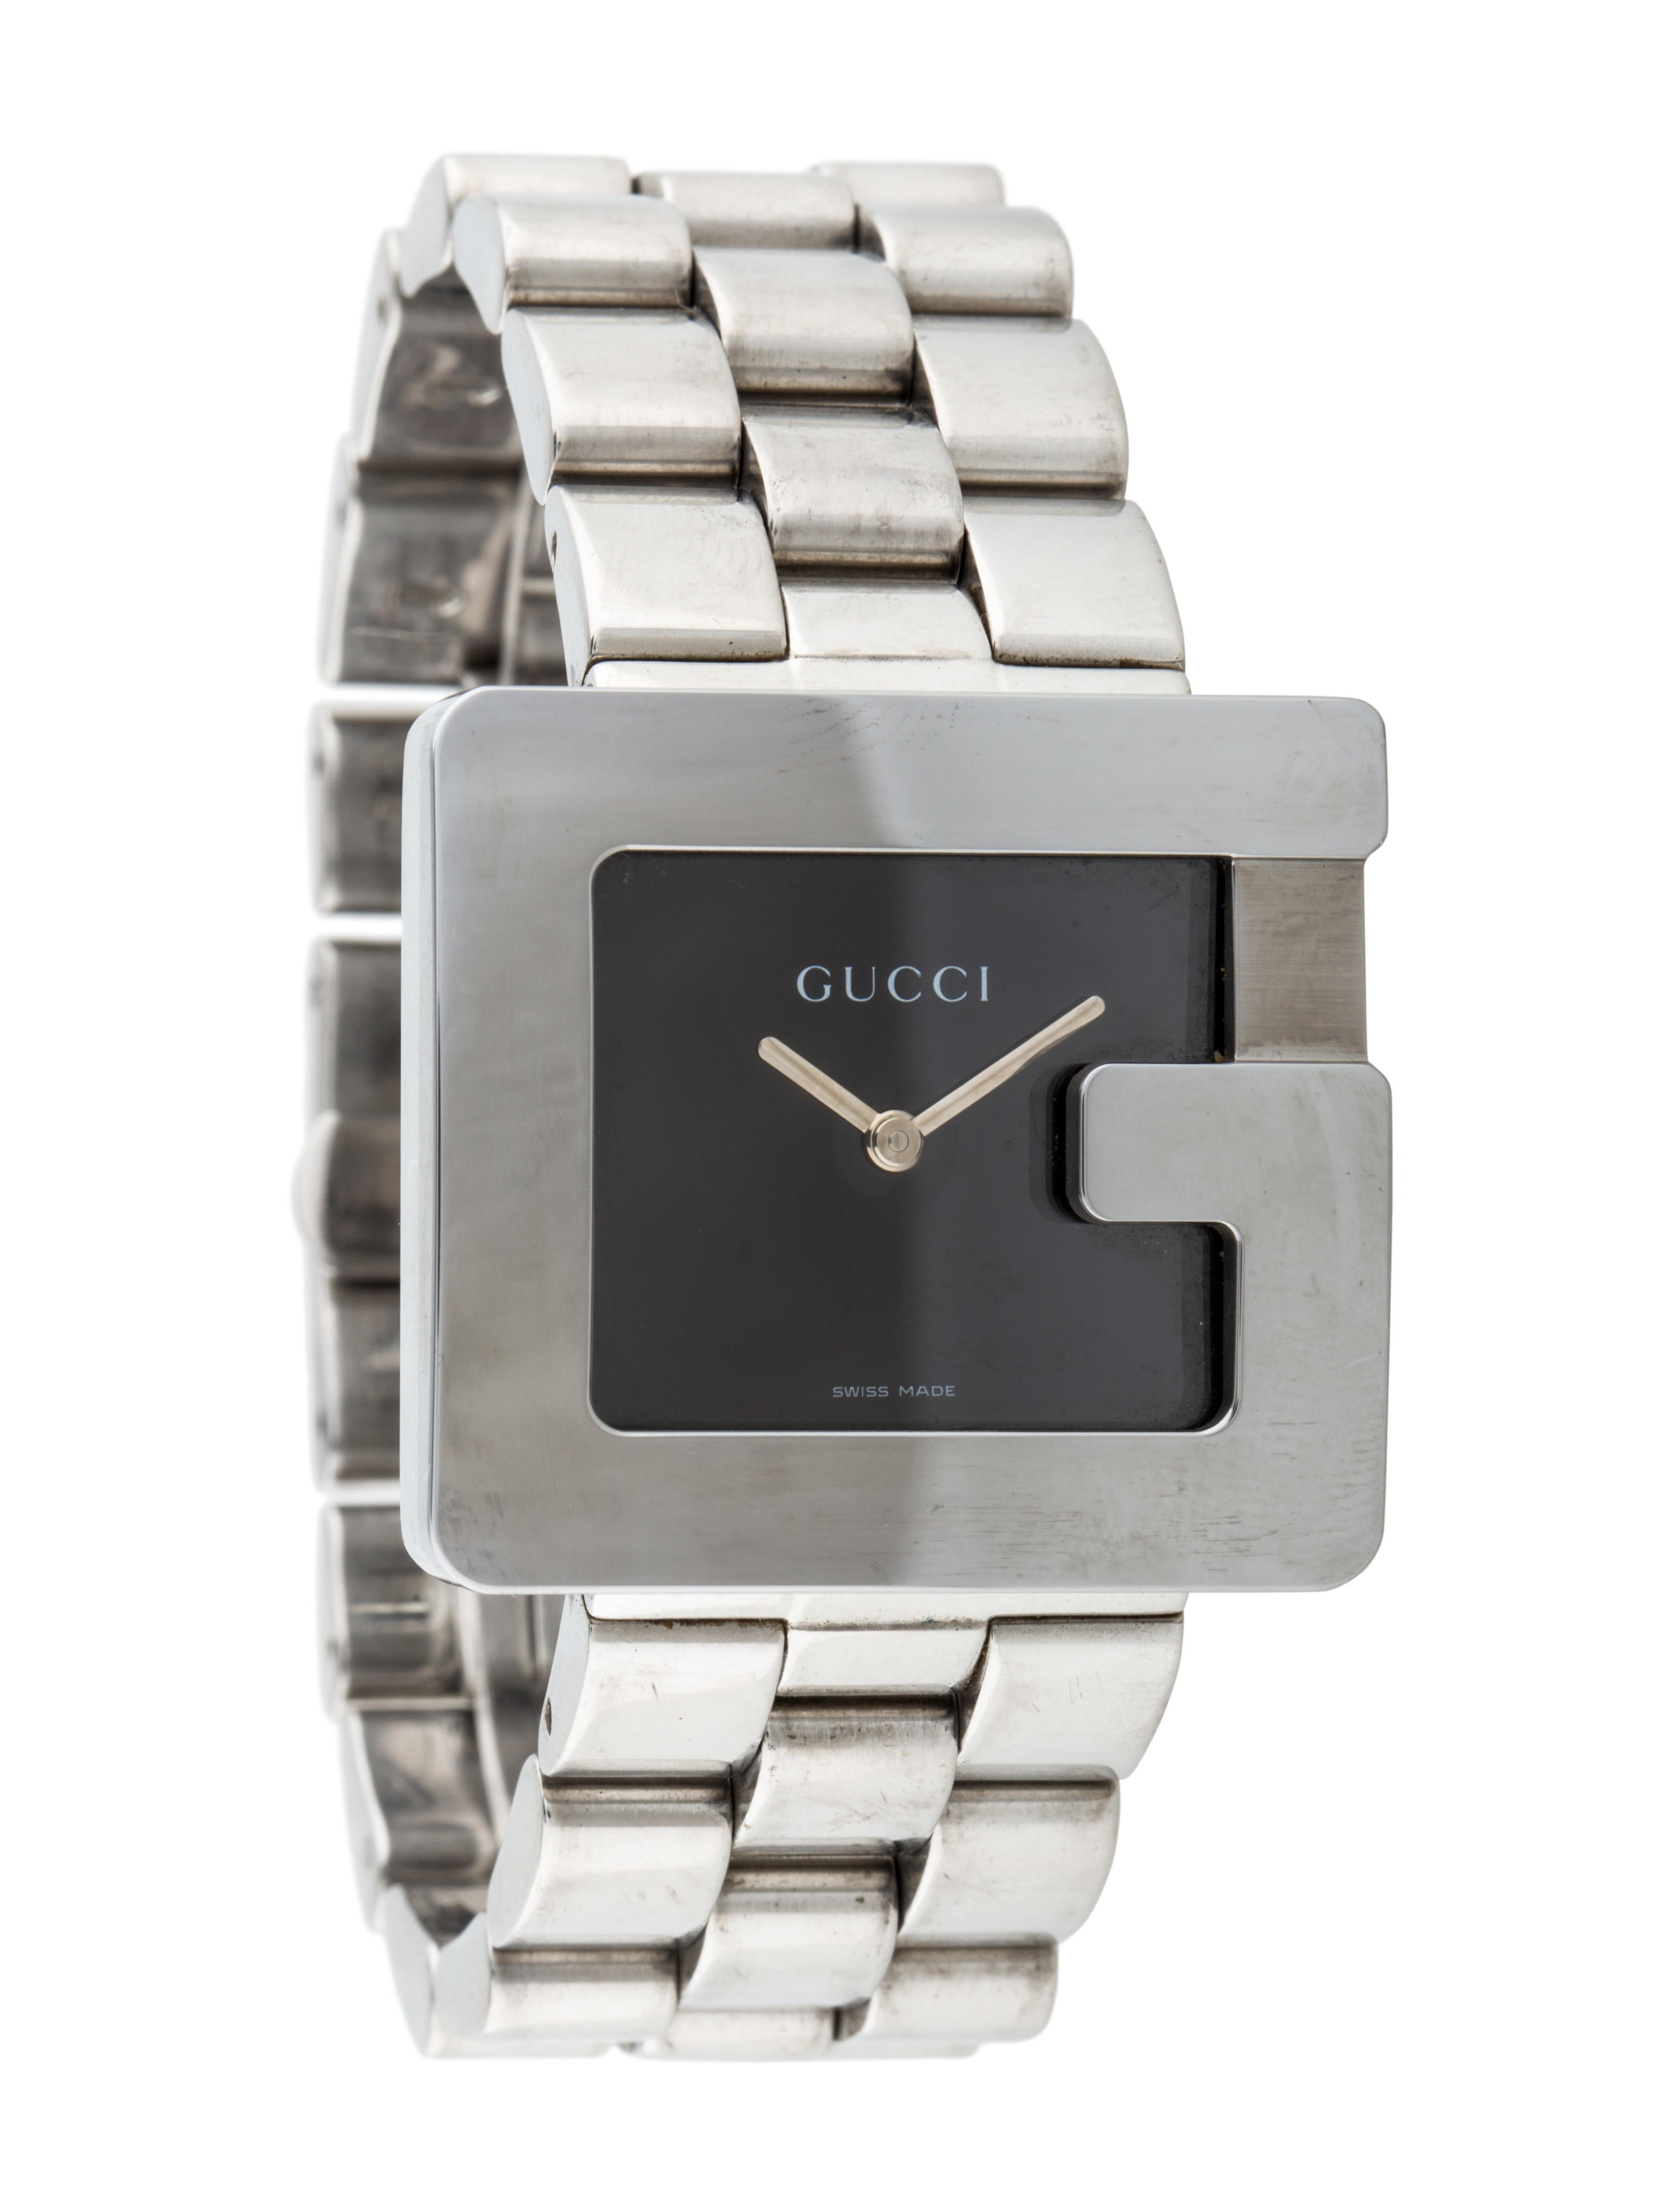 28f5deb785d Gucci 3600M G Series Watch - Bracelet - GUC80627